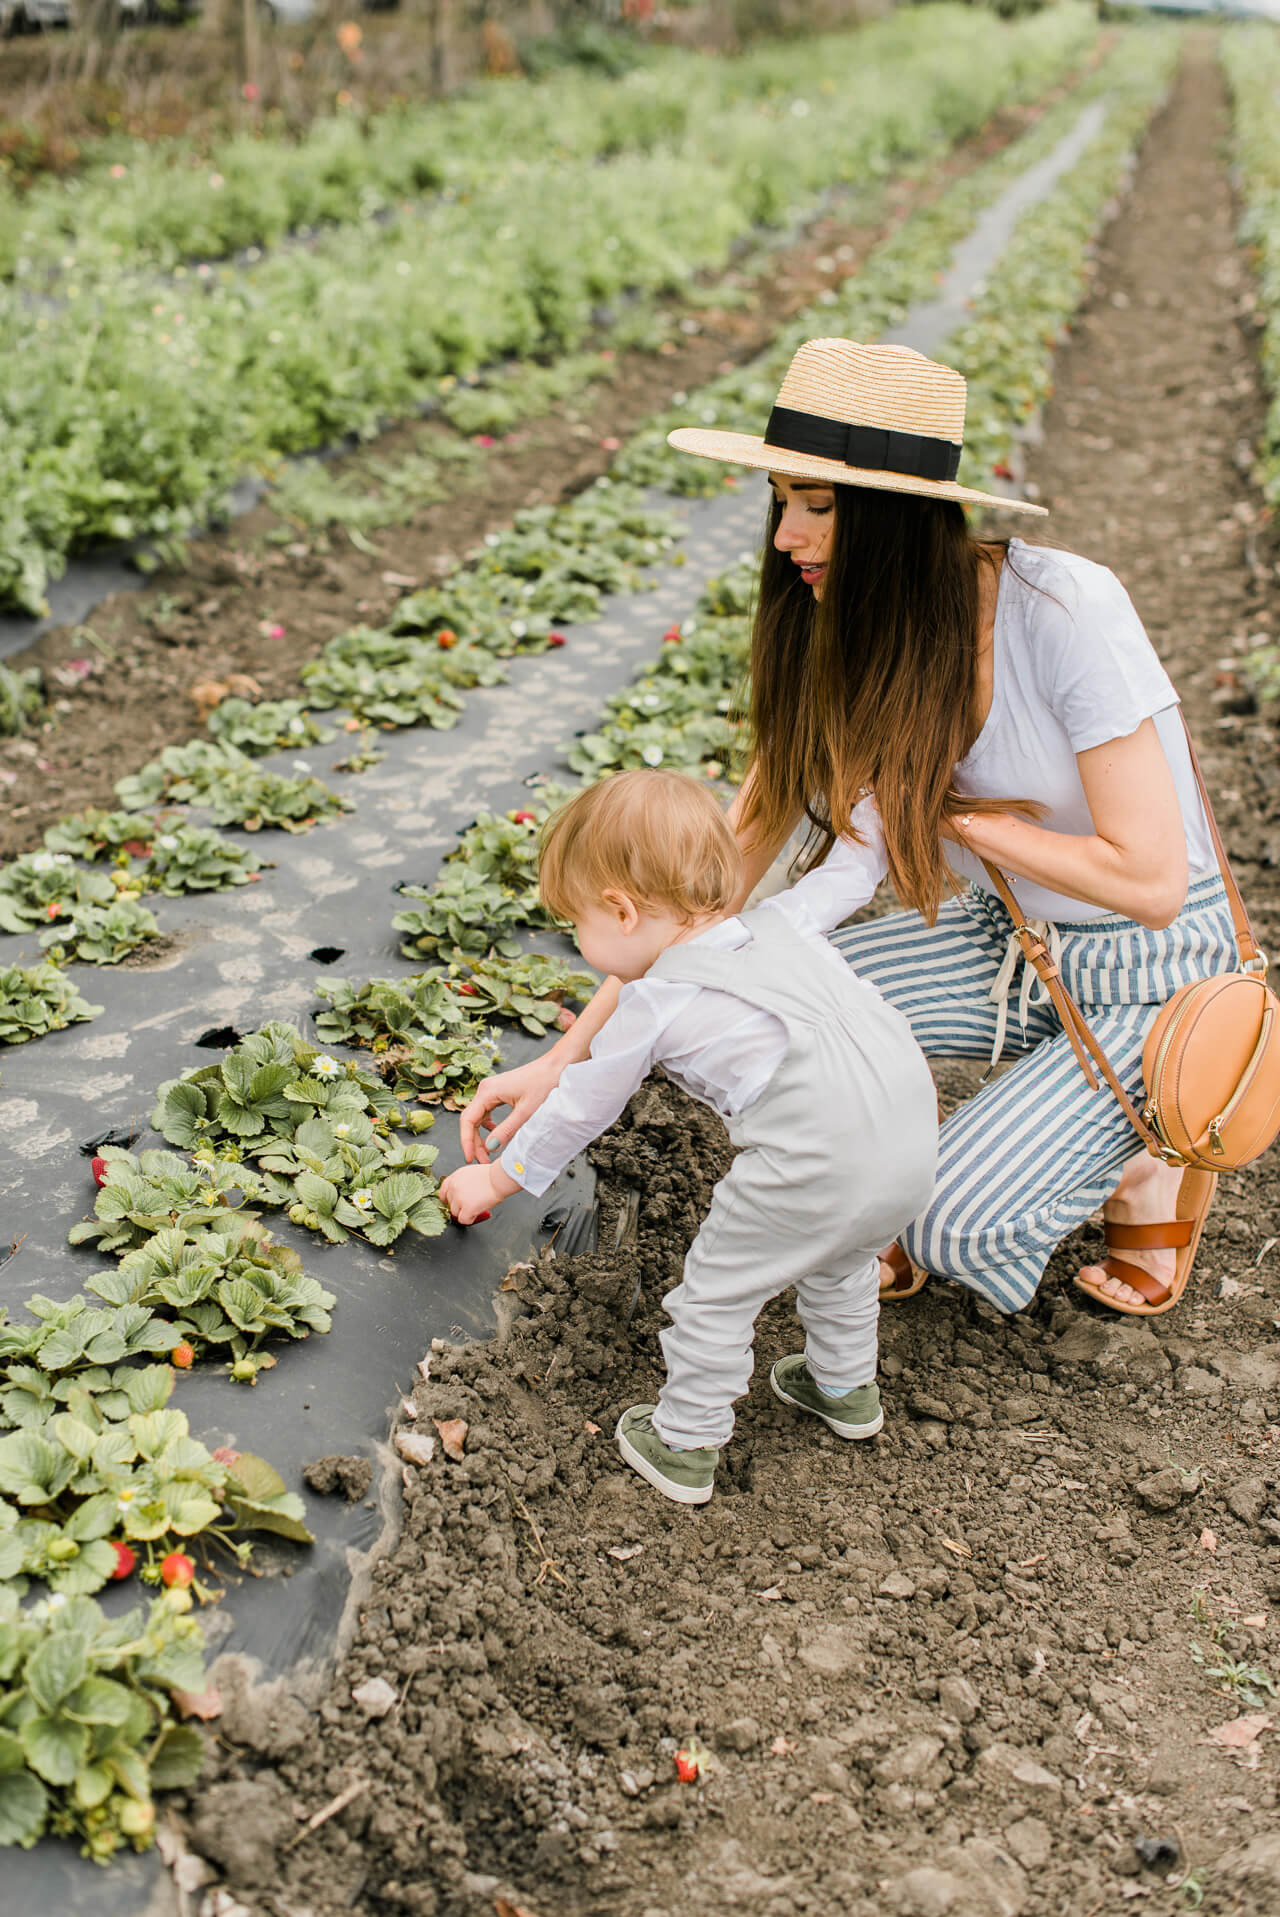 I'd love to hear your recommendations for family friendly summer activities! We loved our day-trip to our local Orange County farm!